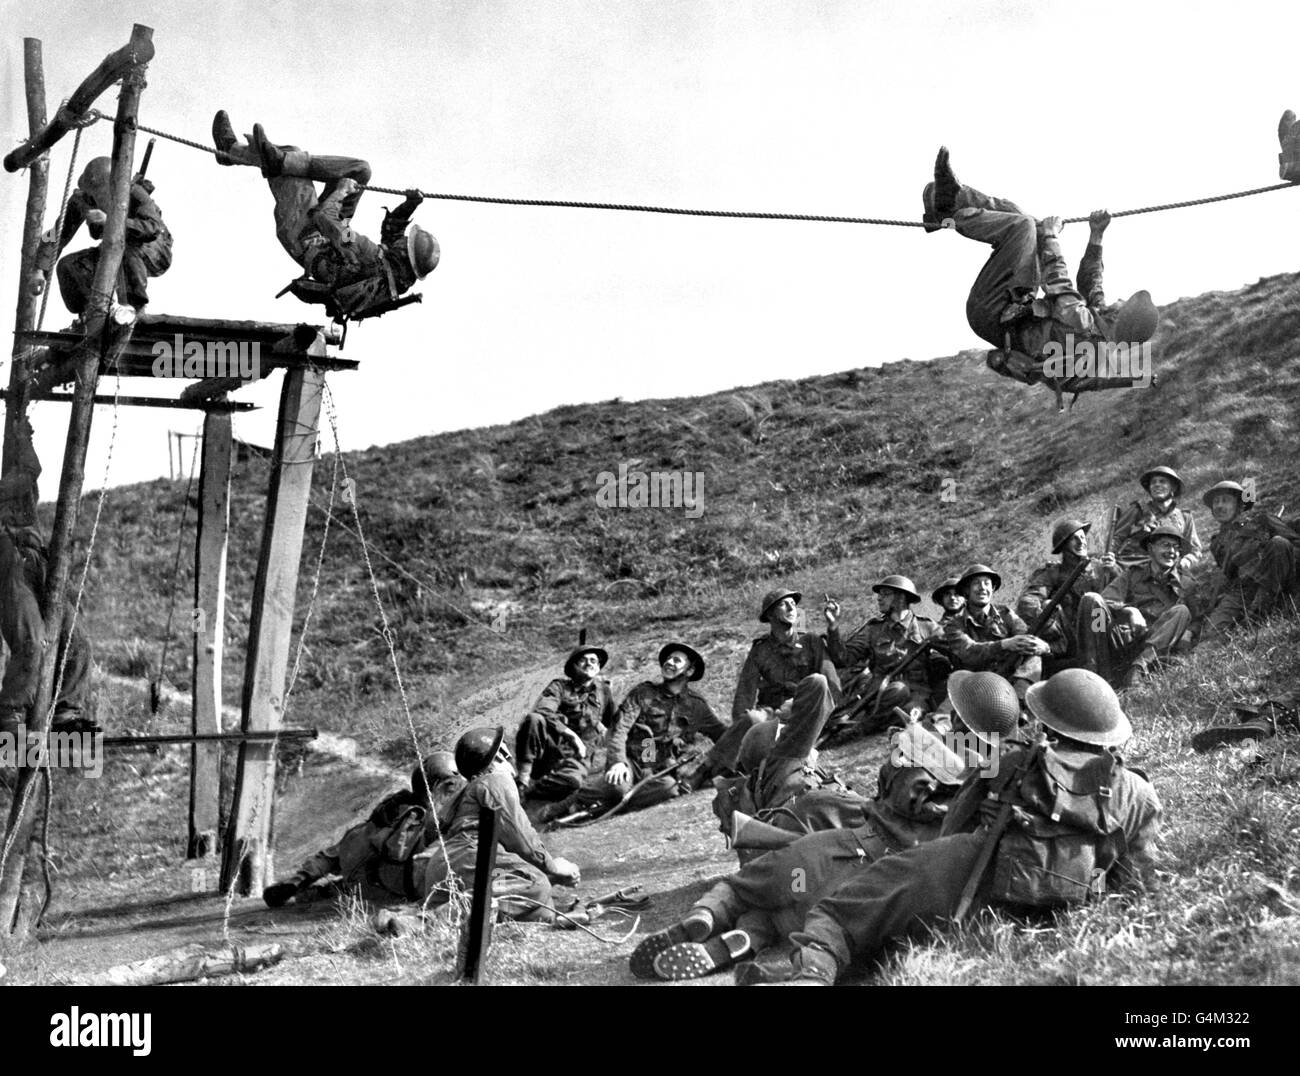 World War Two - British Empire - The Home Front - British Army - Training - 1942 - Stock Image